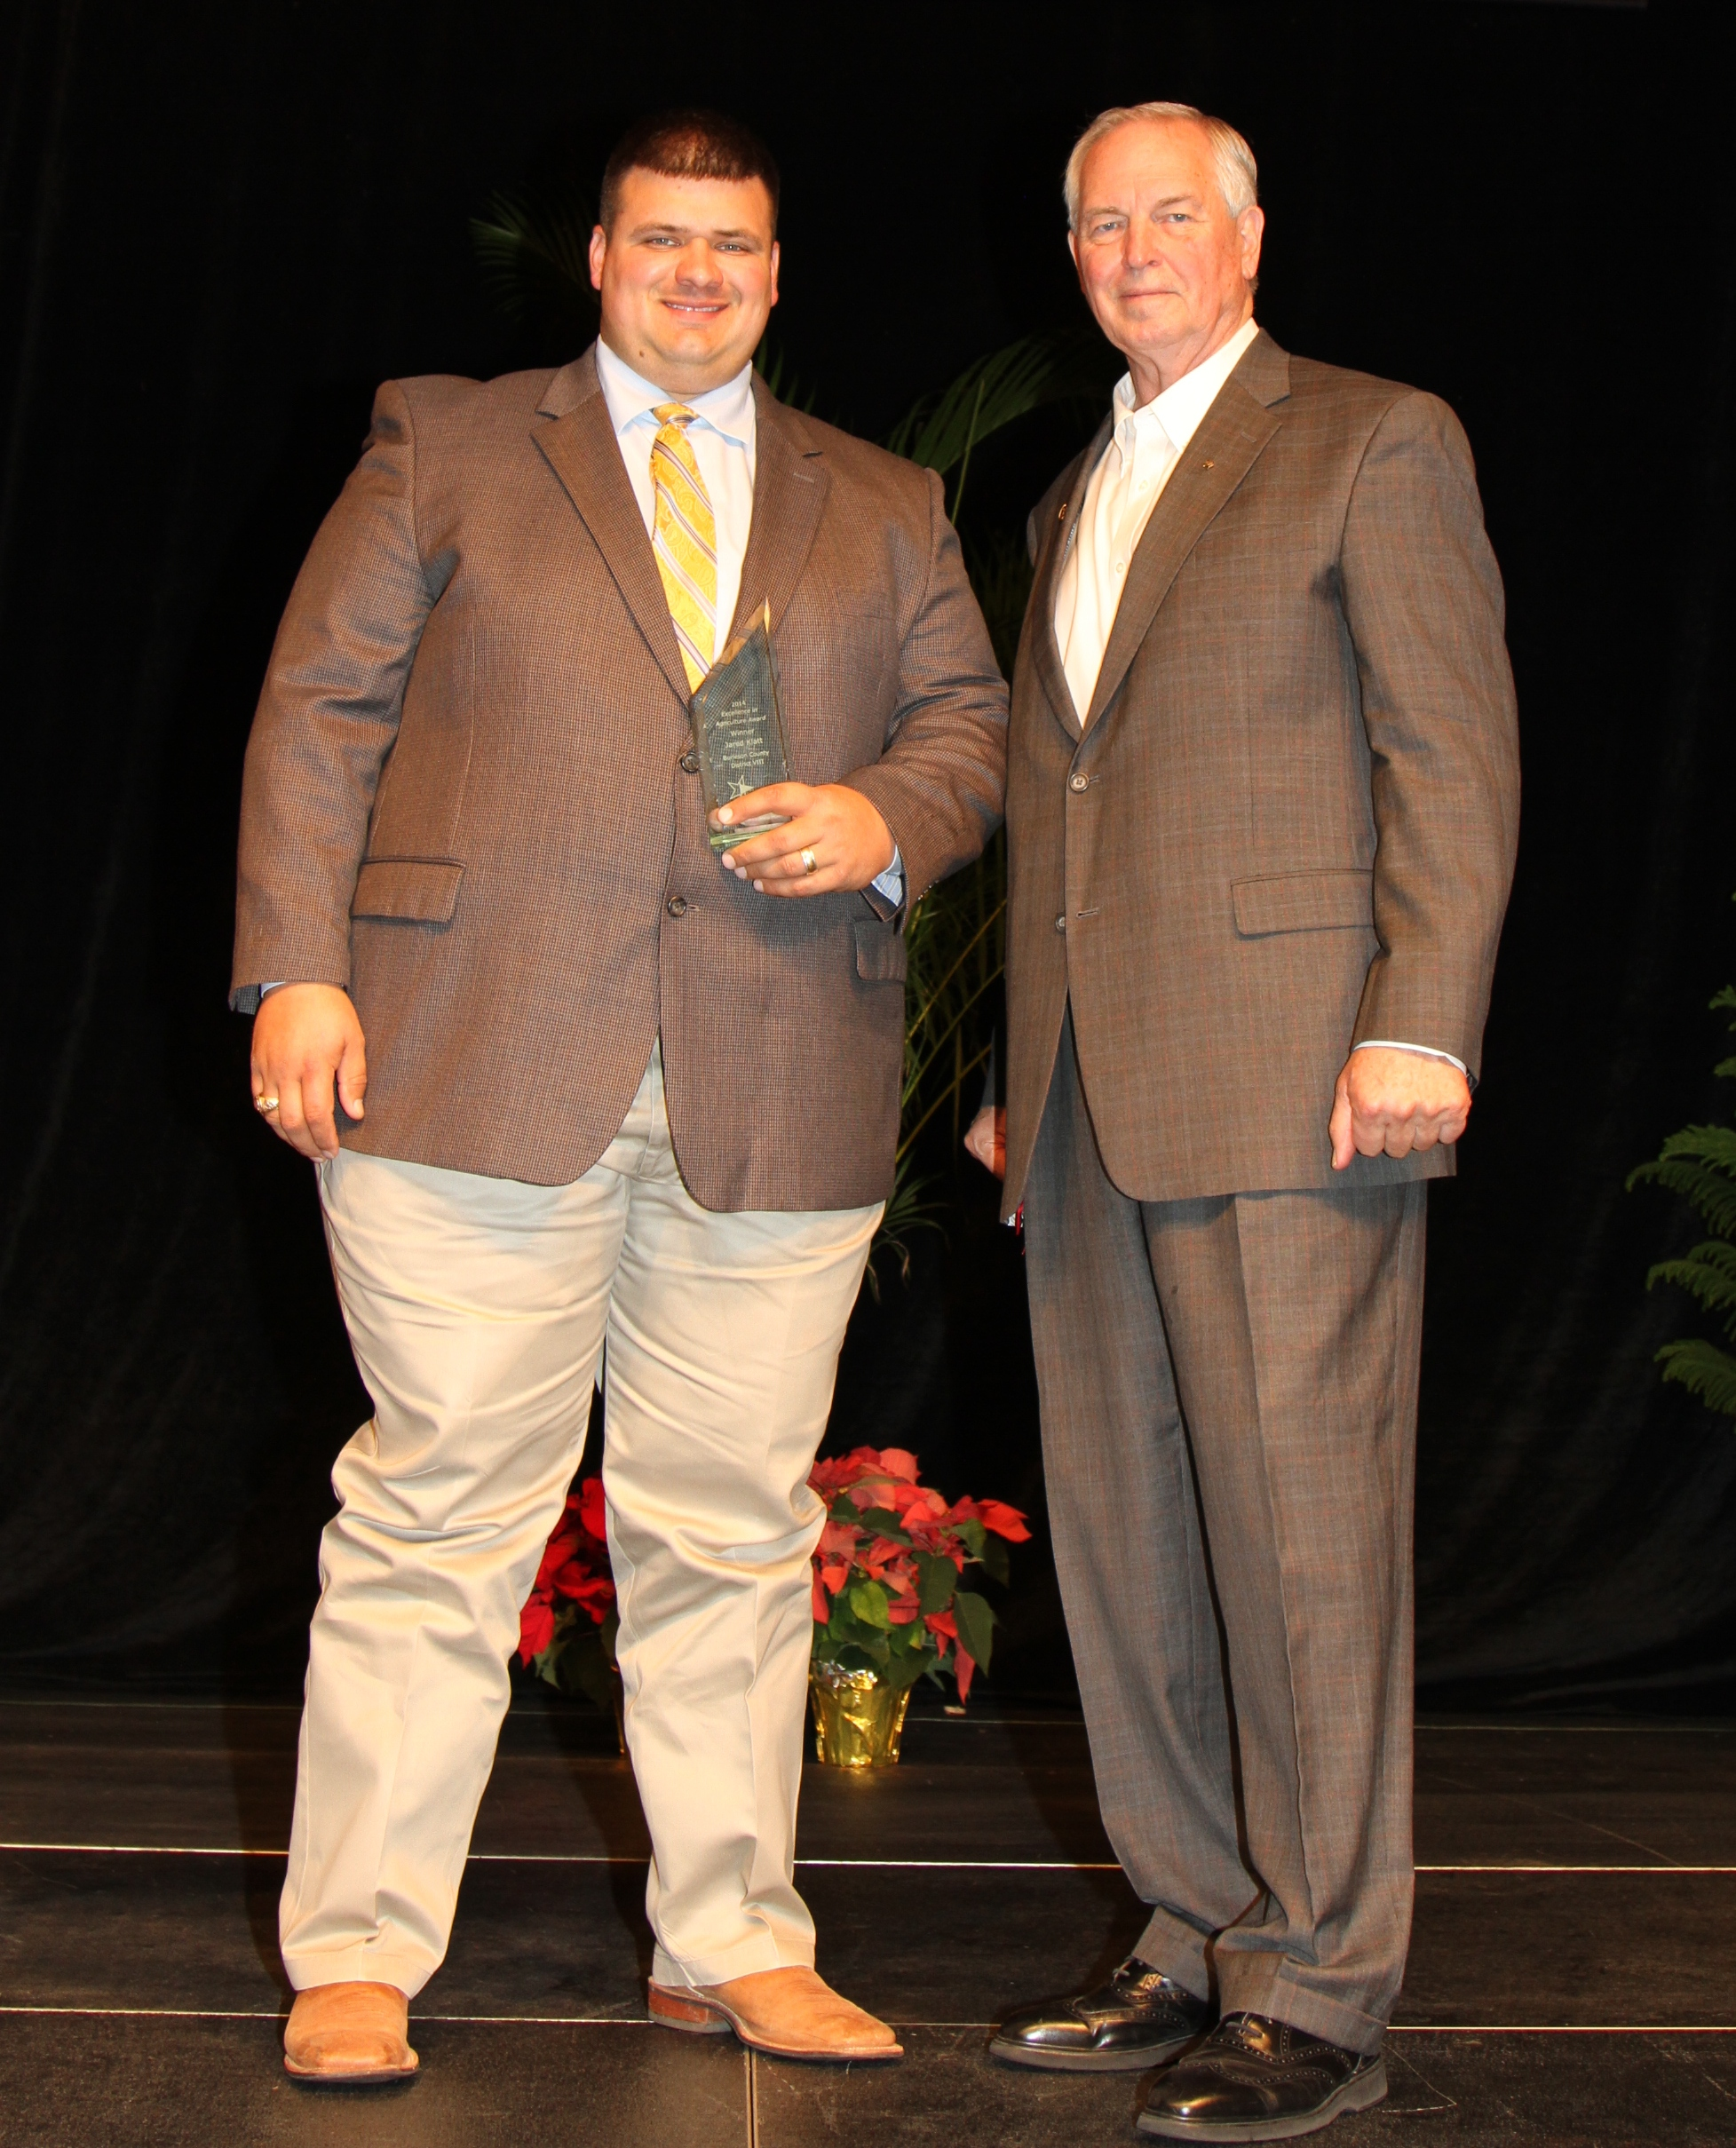 Jared Klatt of Bryan was named Texas Farm Bureau's 2014 Excellence in Agriculture winner.  TFB President Kenneth Dierschke presented the award during the organization's general session.